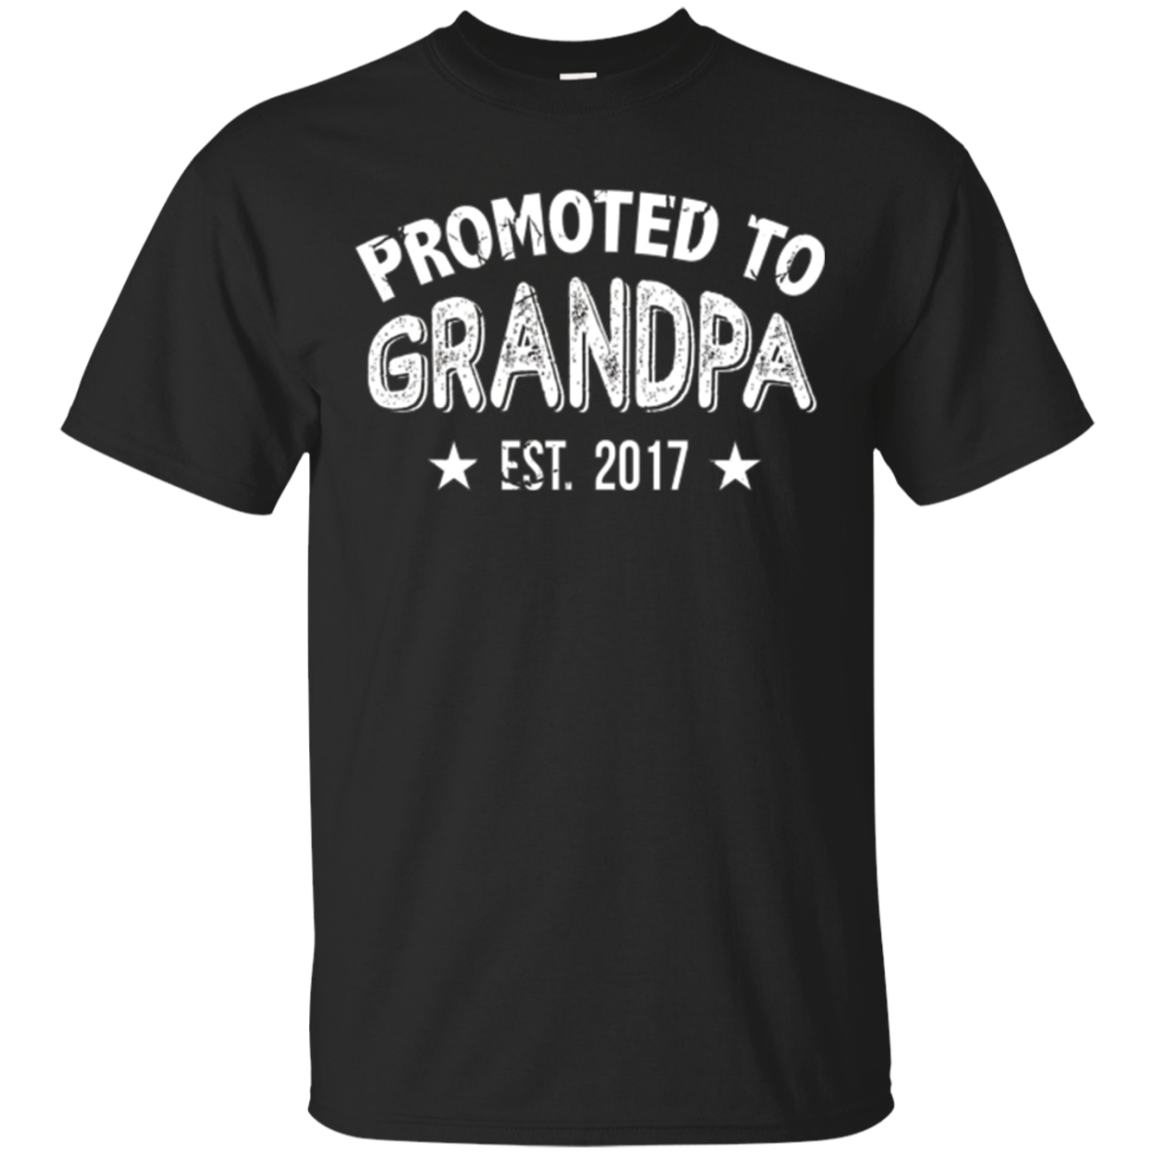 Mens Promoted To Grandpa 2017 Tshirt Fathers Day Gifts For Grampa